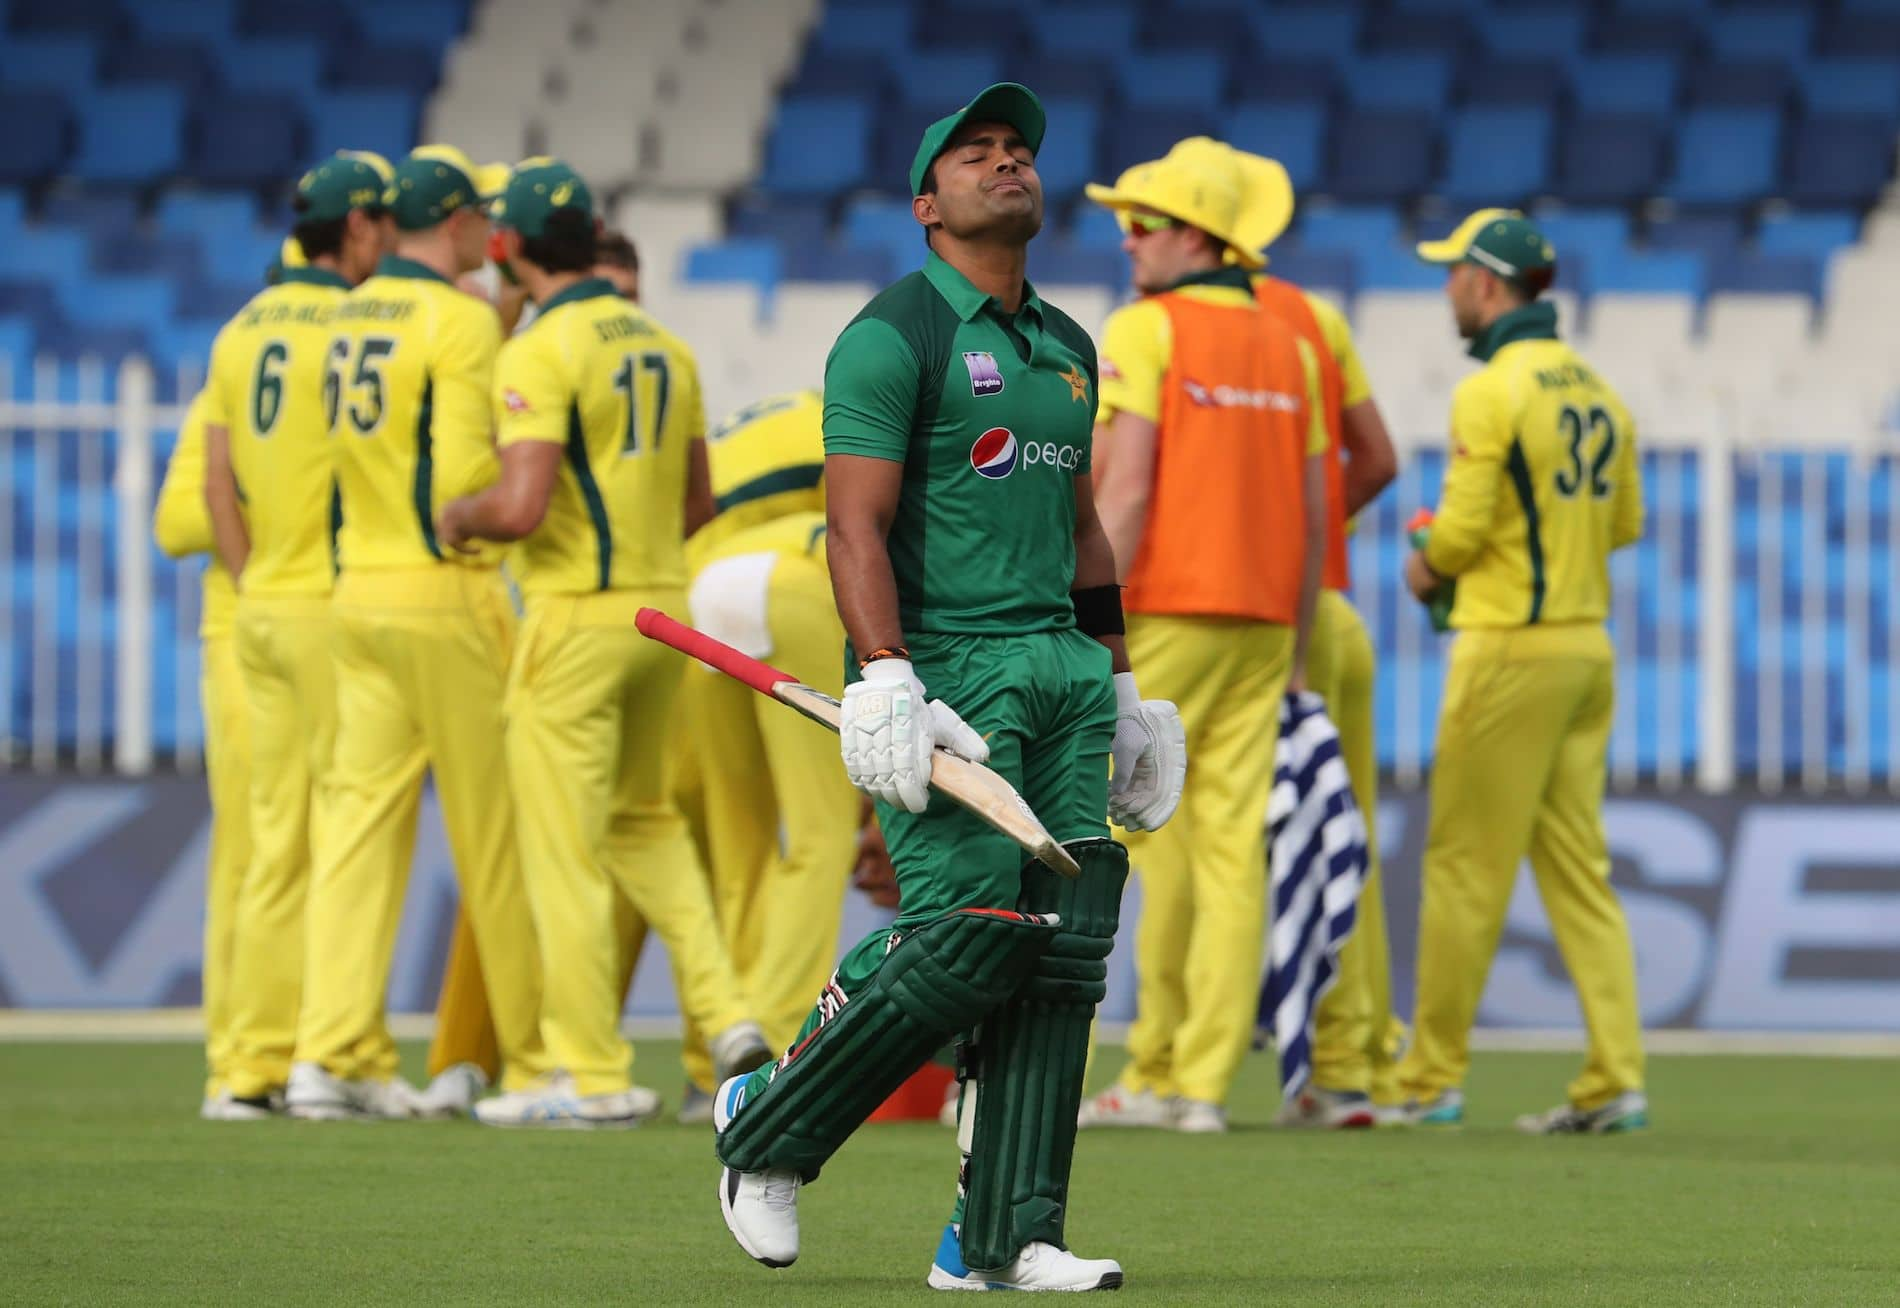 World Cup Tracker: Will Umar Akmal's latest reprimand cost him?